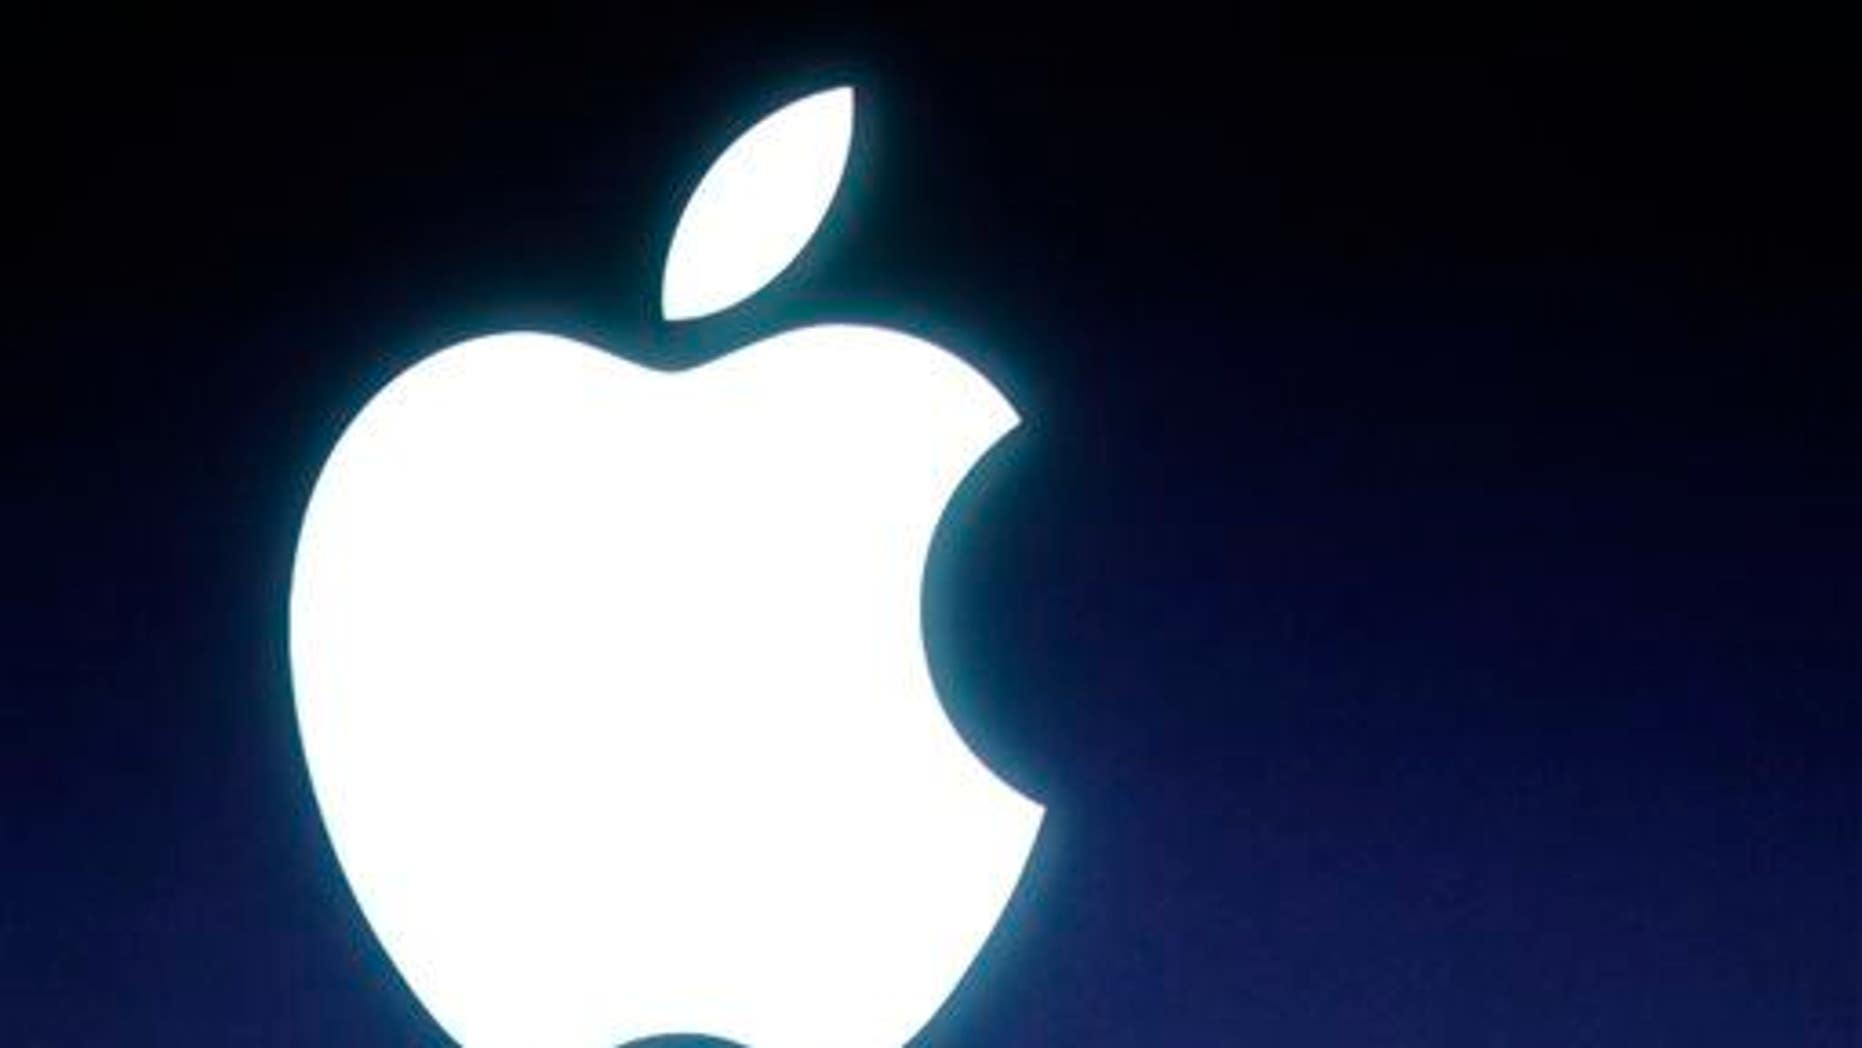 In this Tuesday, Oct. 4, 2011 file photo, an Apple logo is seen.